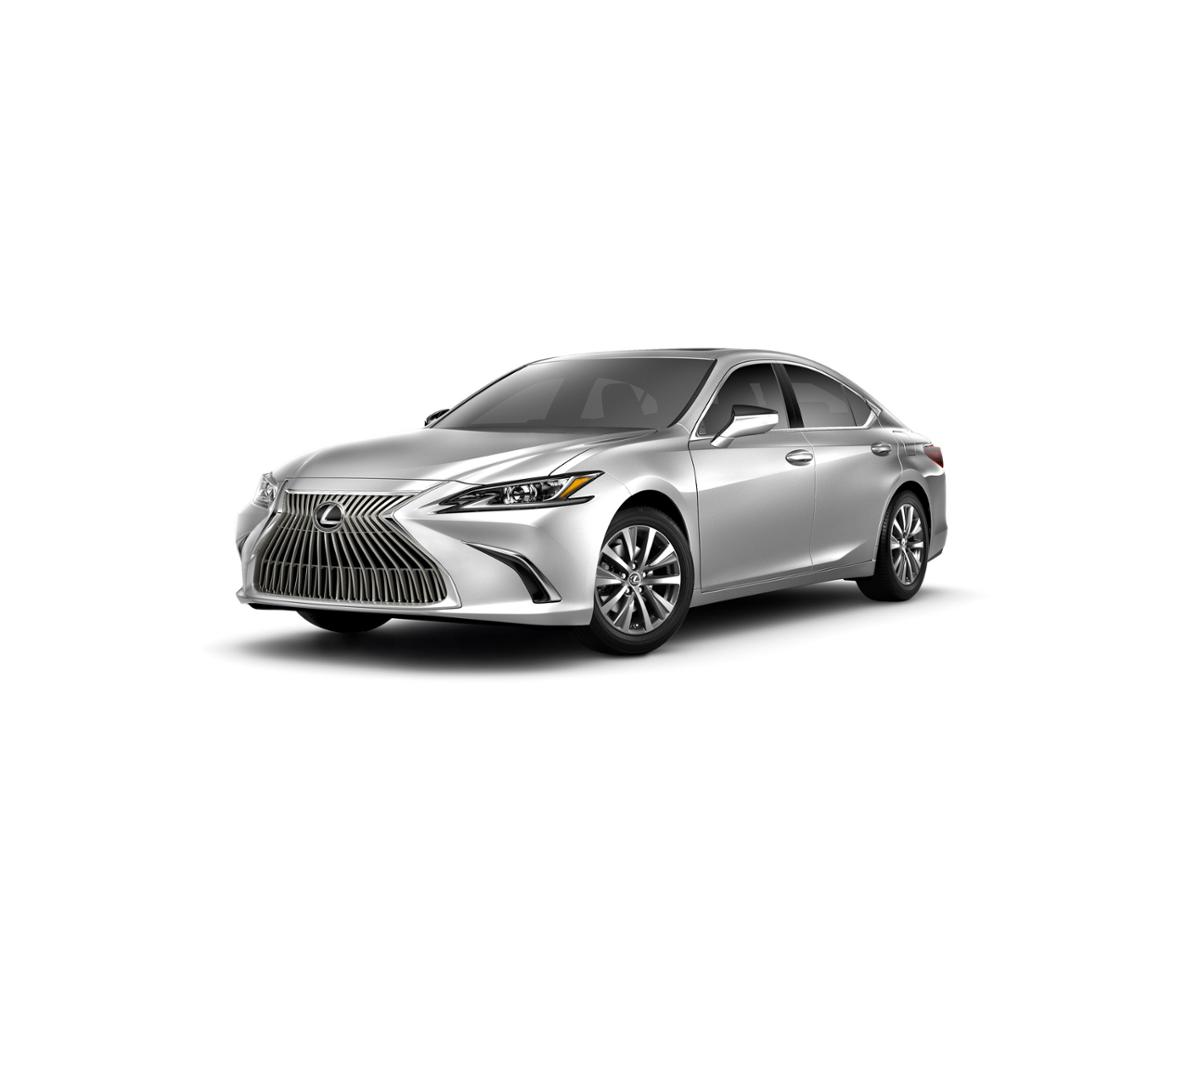 2019 Lexus ES 350 Vehicle Photo in Santa Monica, CA 90404